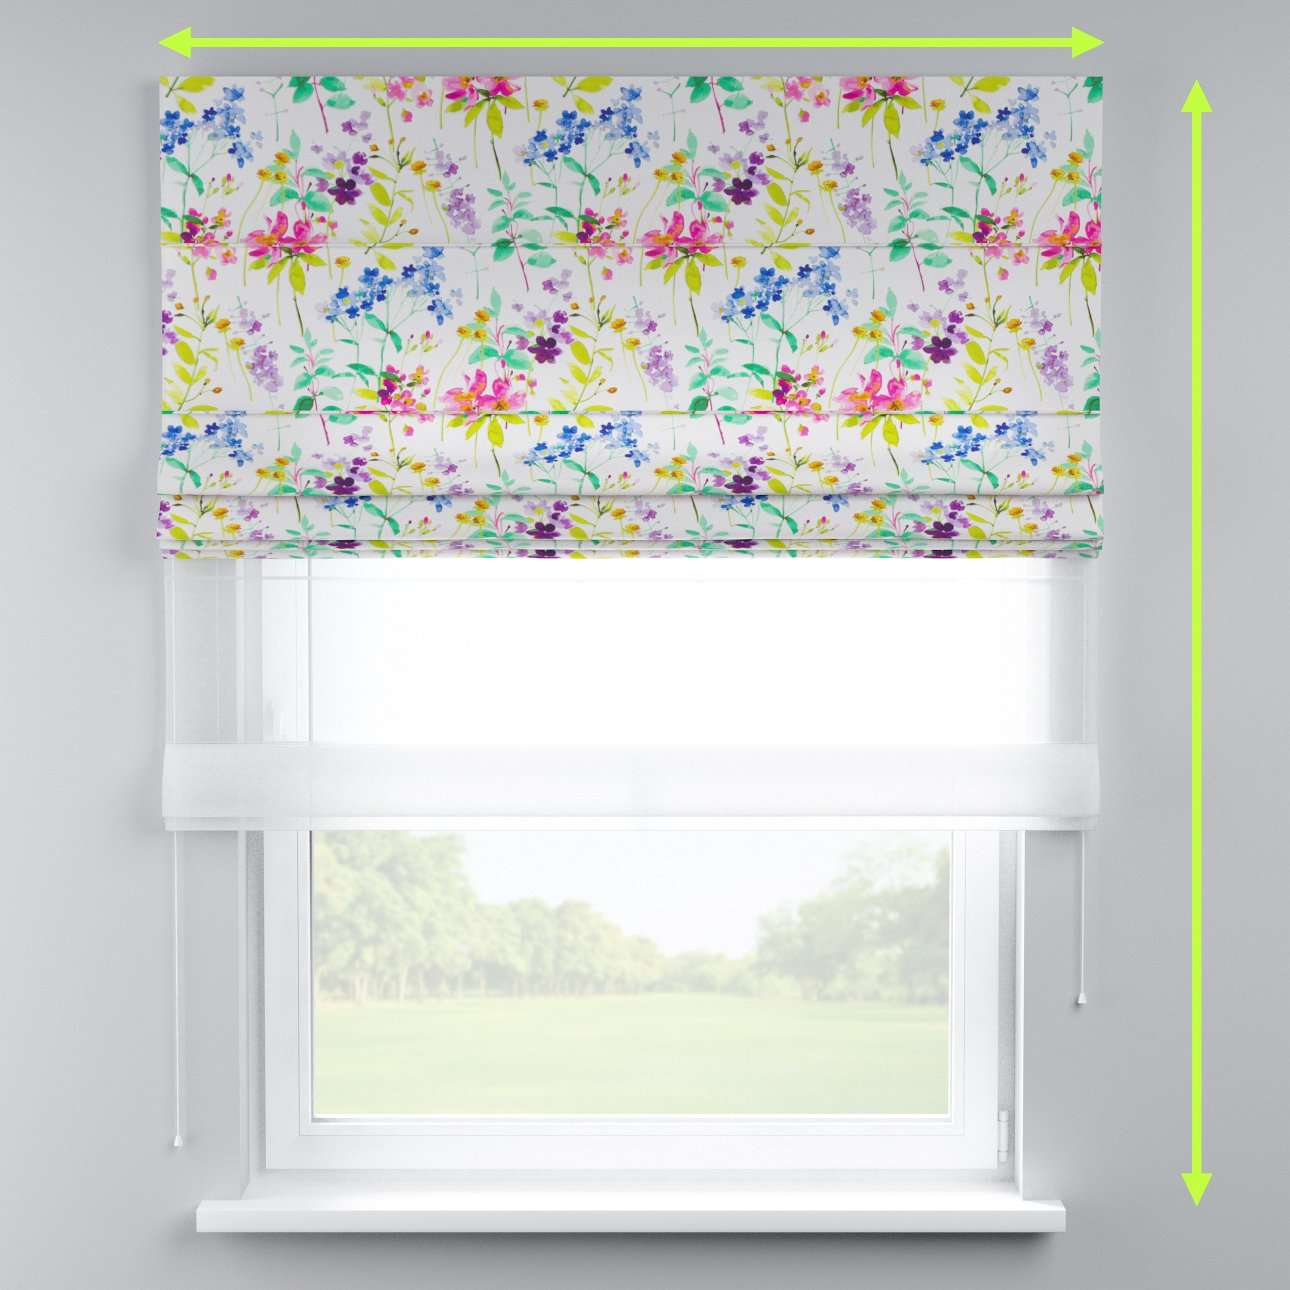 Voile and fabric roman blind (DUO II) in collection Monet, fabric: 140-06